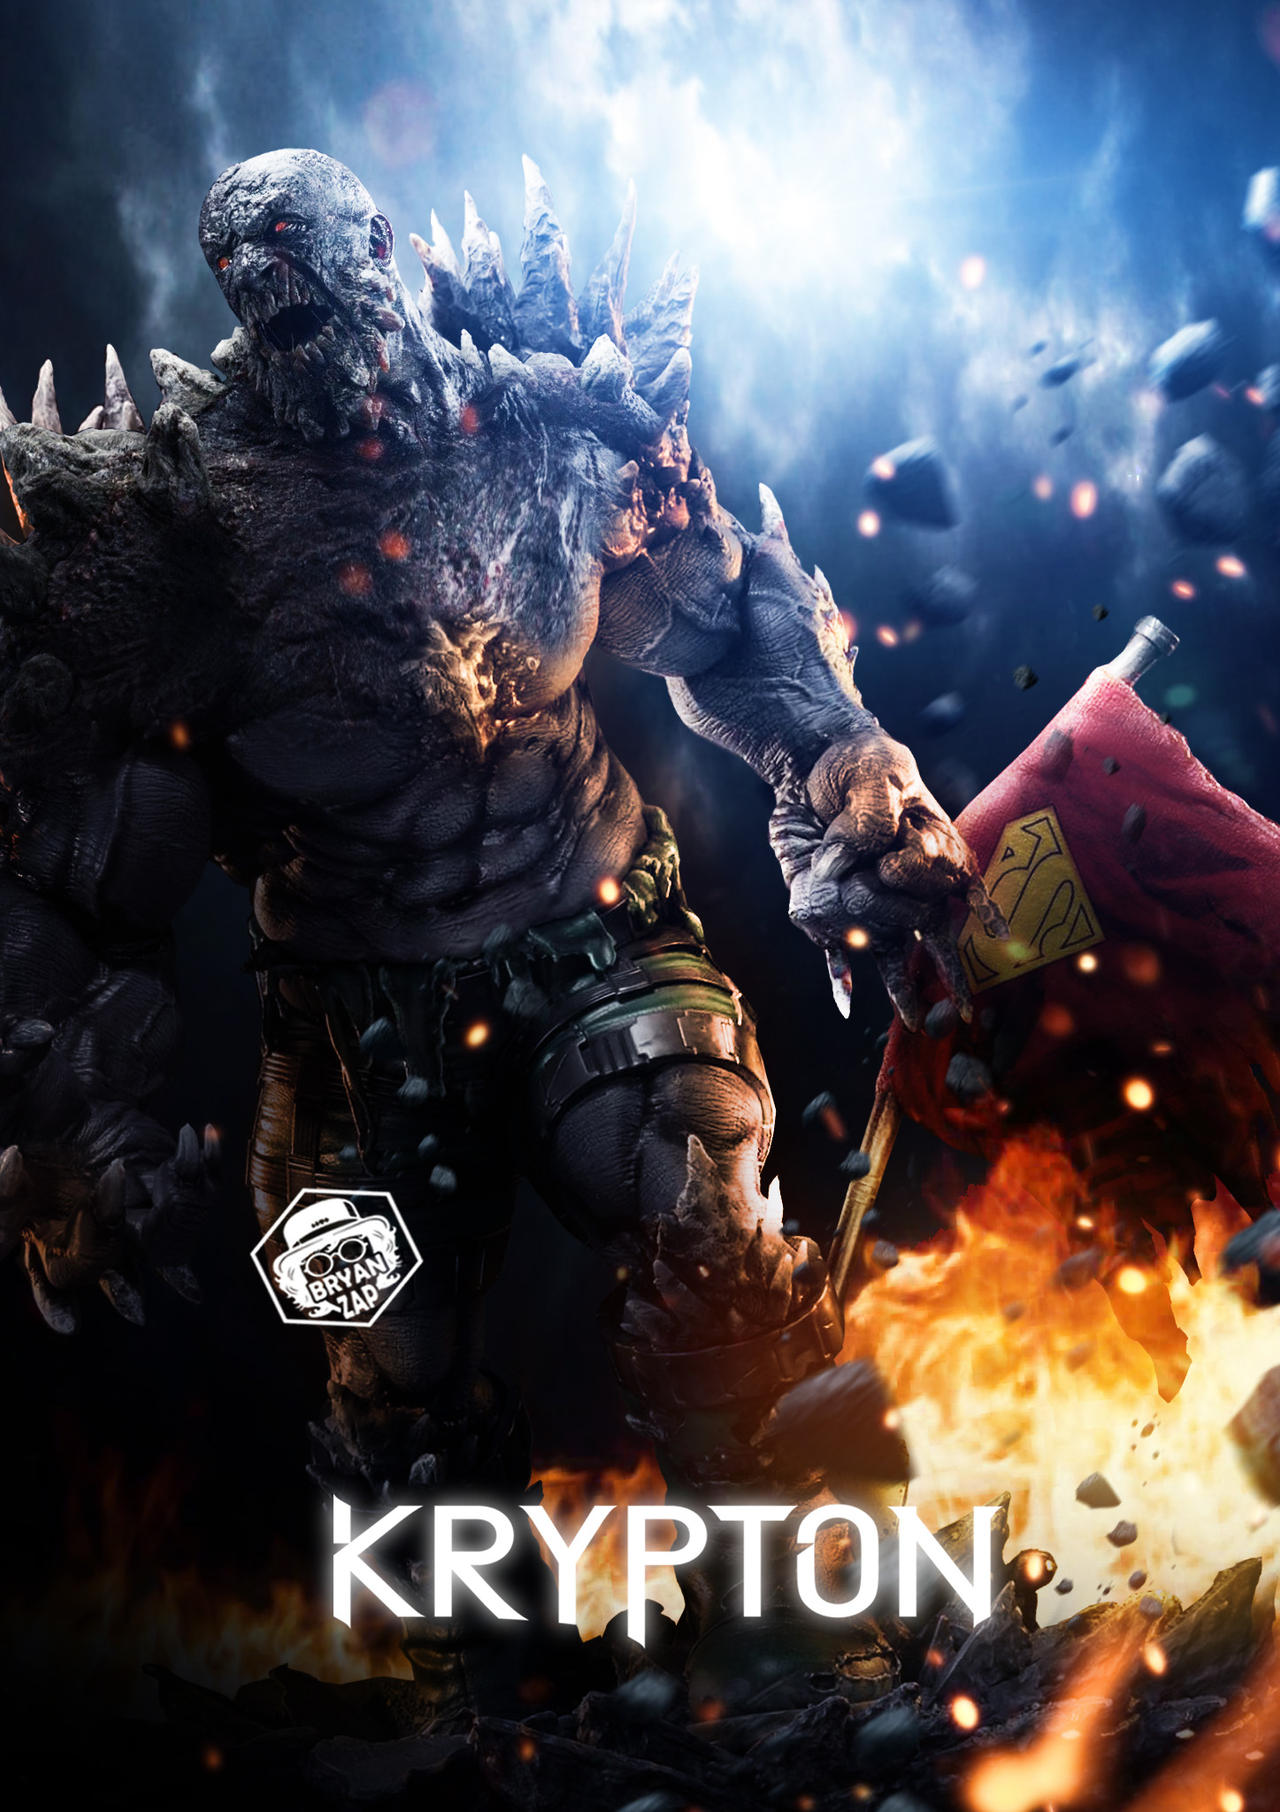 Doomsday Krypton Poster By Bryanzap On Deviantart